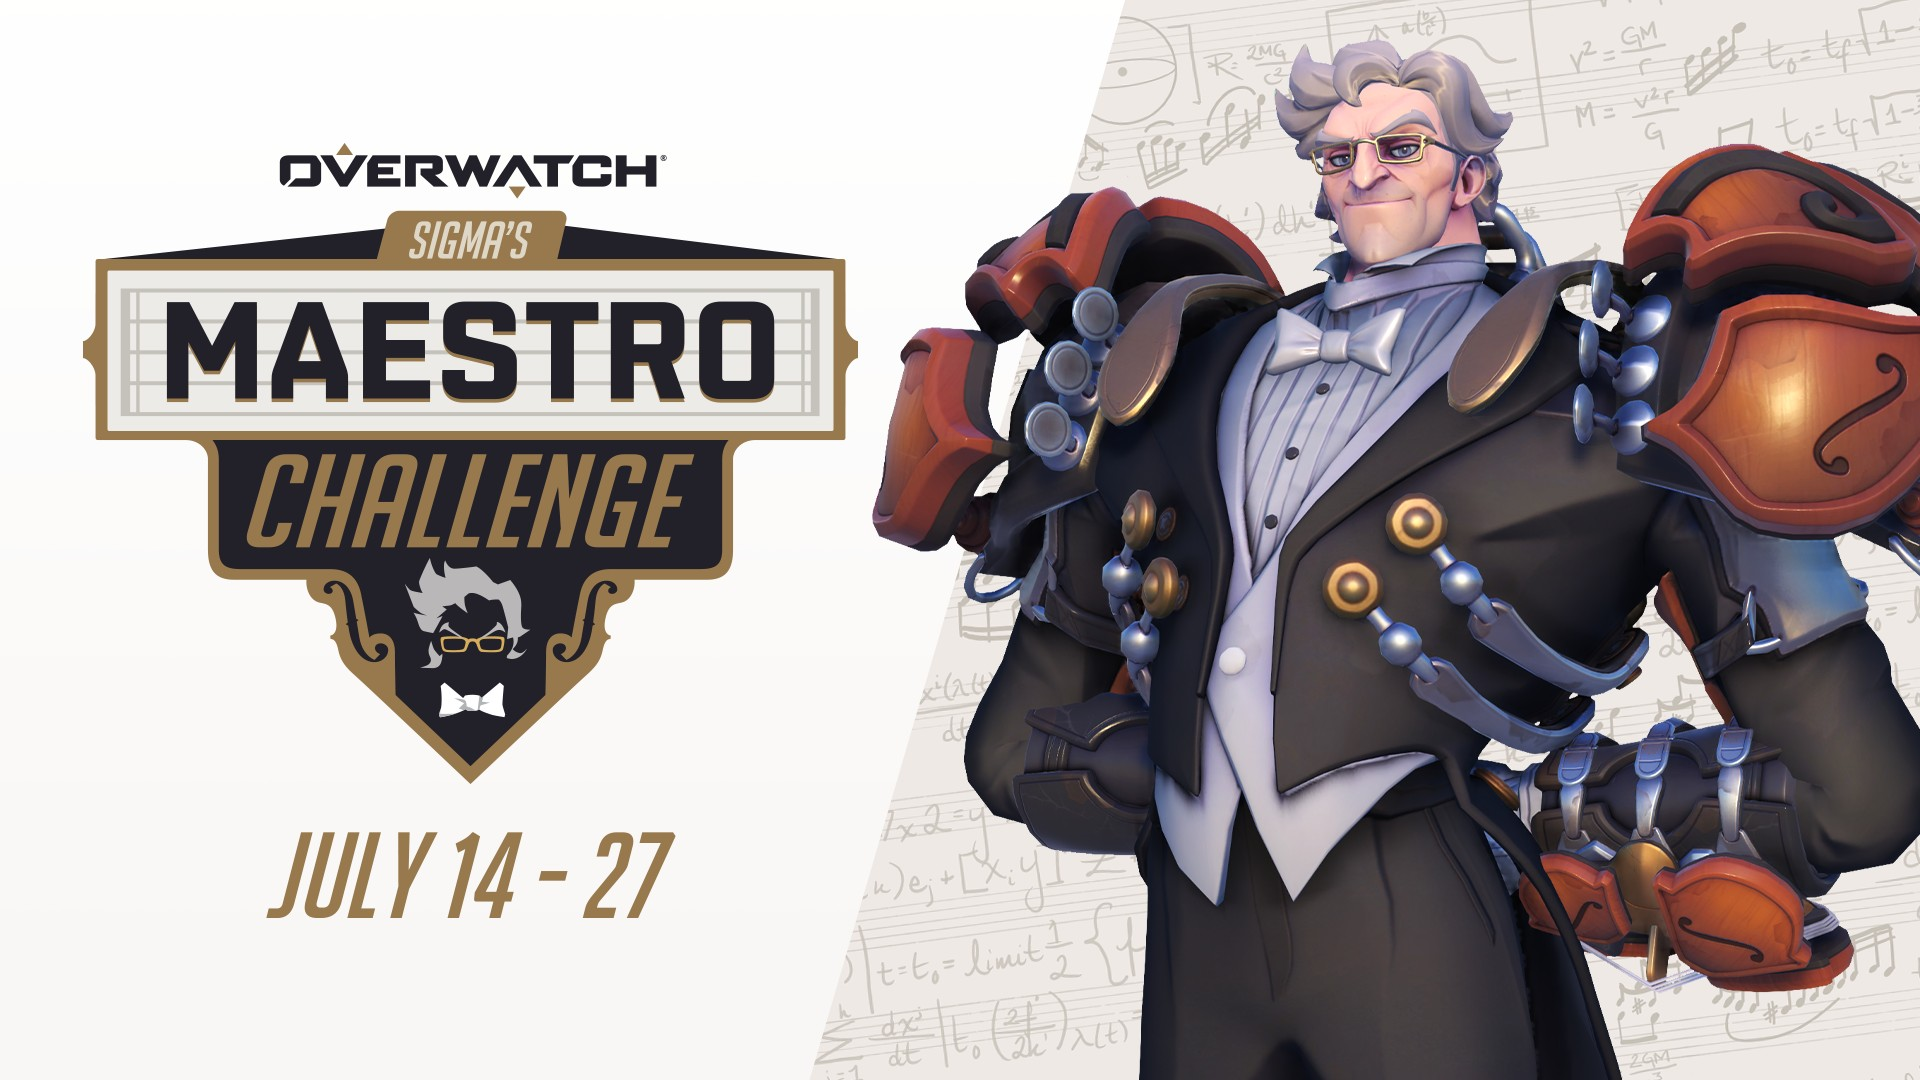 Video For Earn Epic Overwatch Rewards in Sigma's Maestro Challenge, Now Live on Xbox One